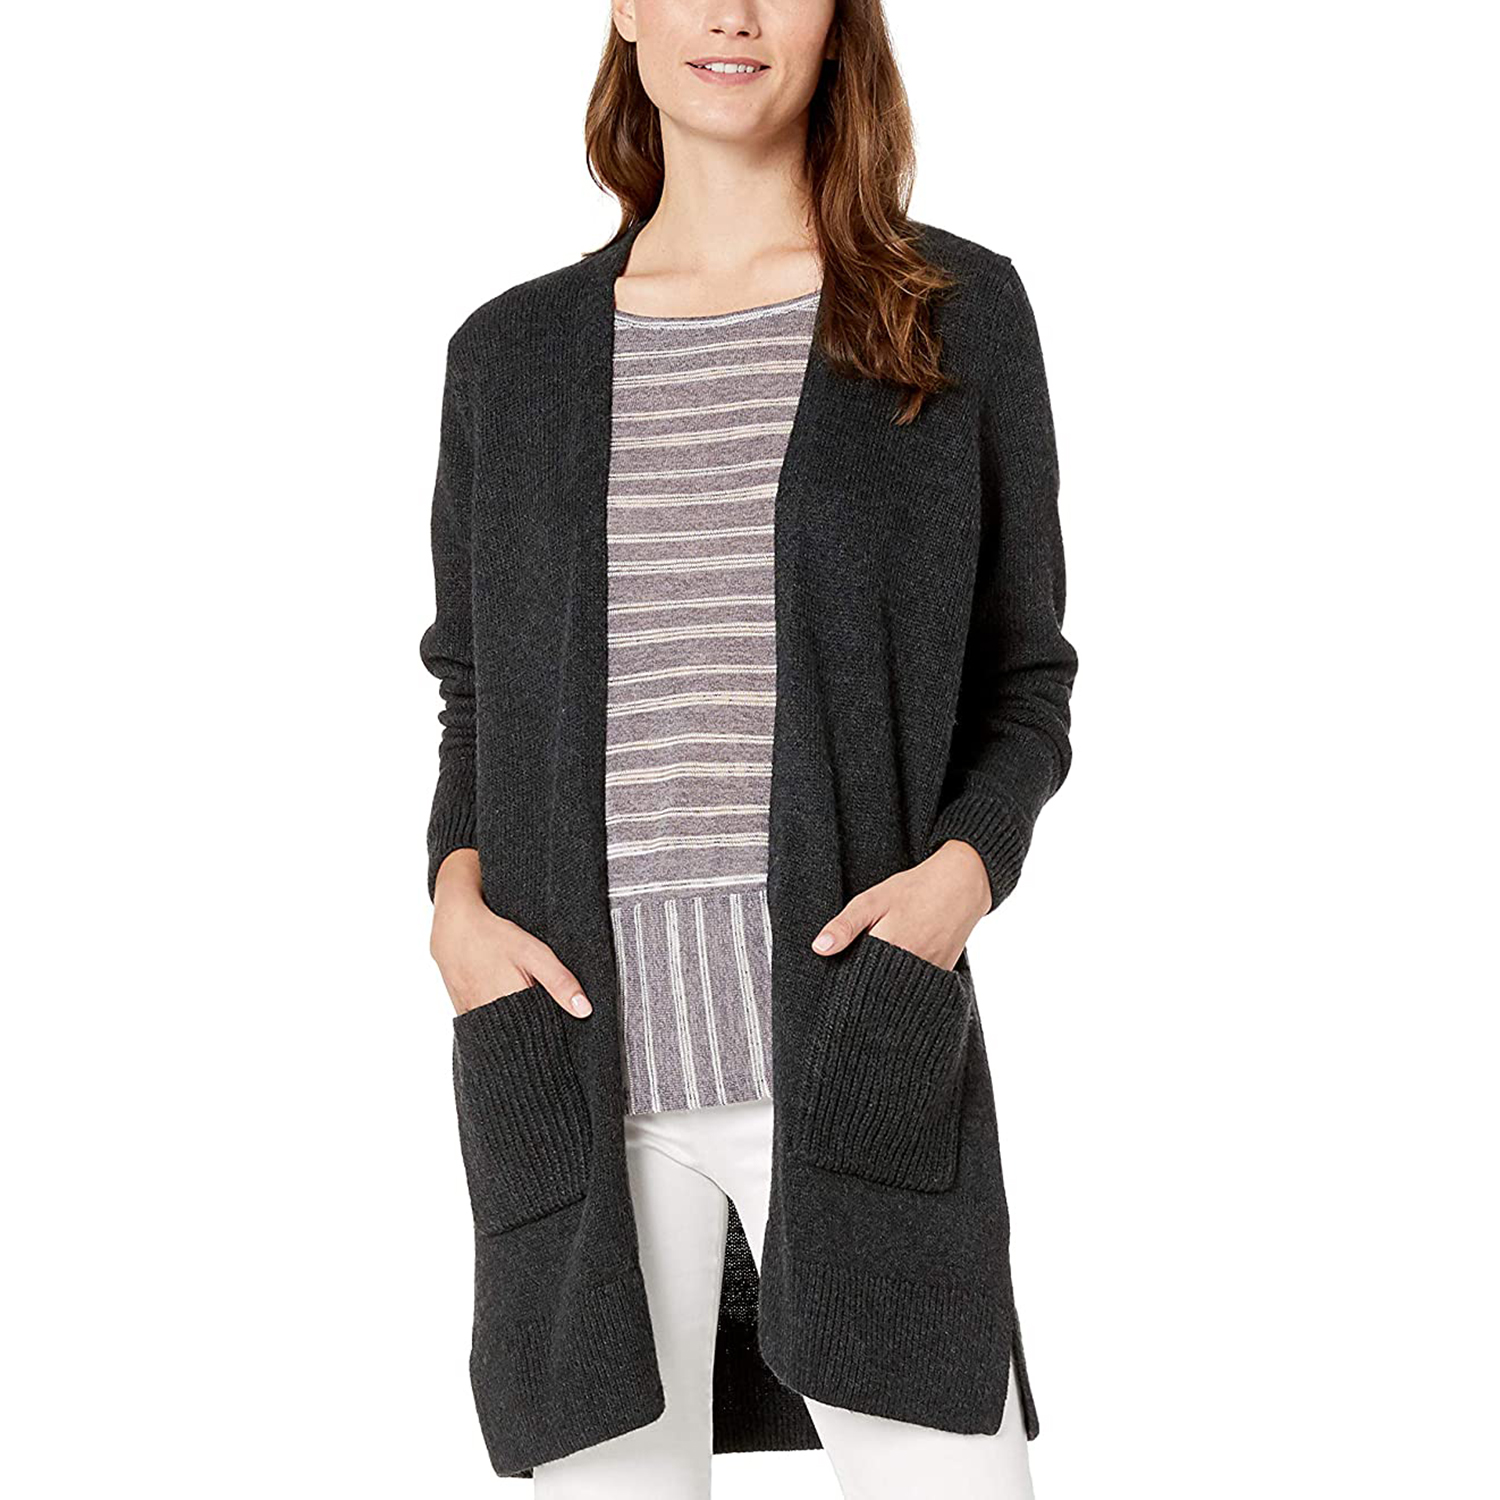 Amazon Essentials Women's Long-Sleeve Jersey Stitch Open-Front Sweater